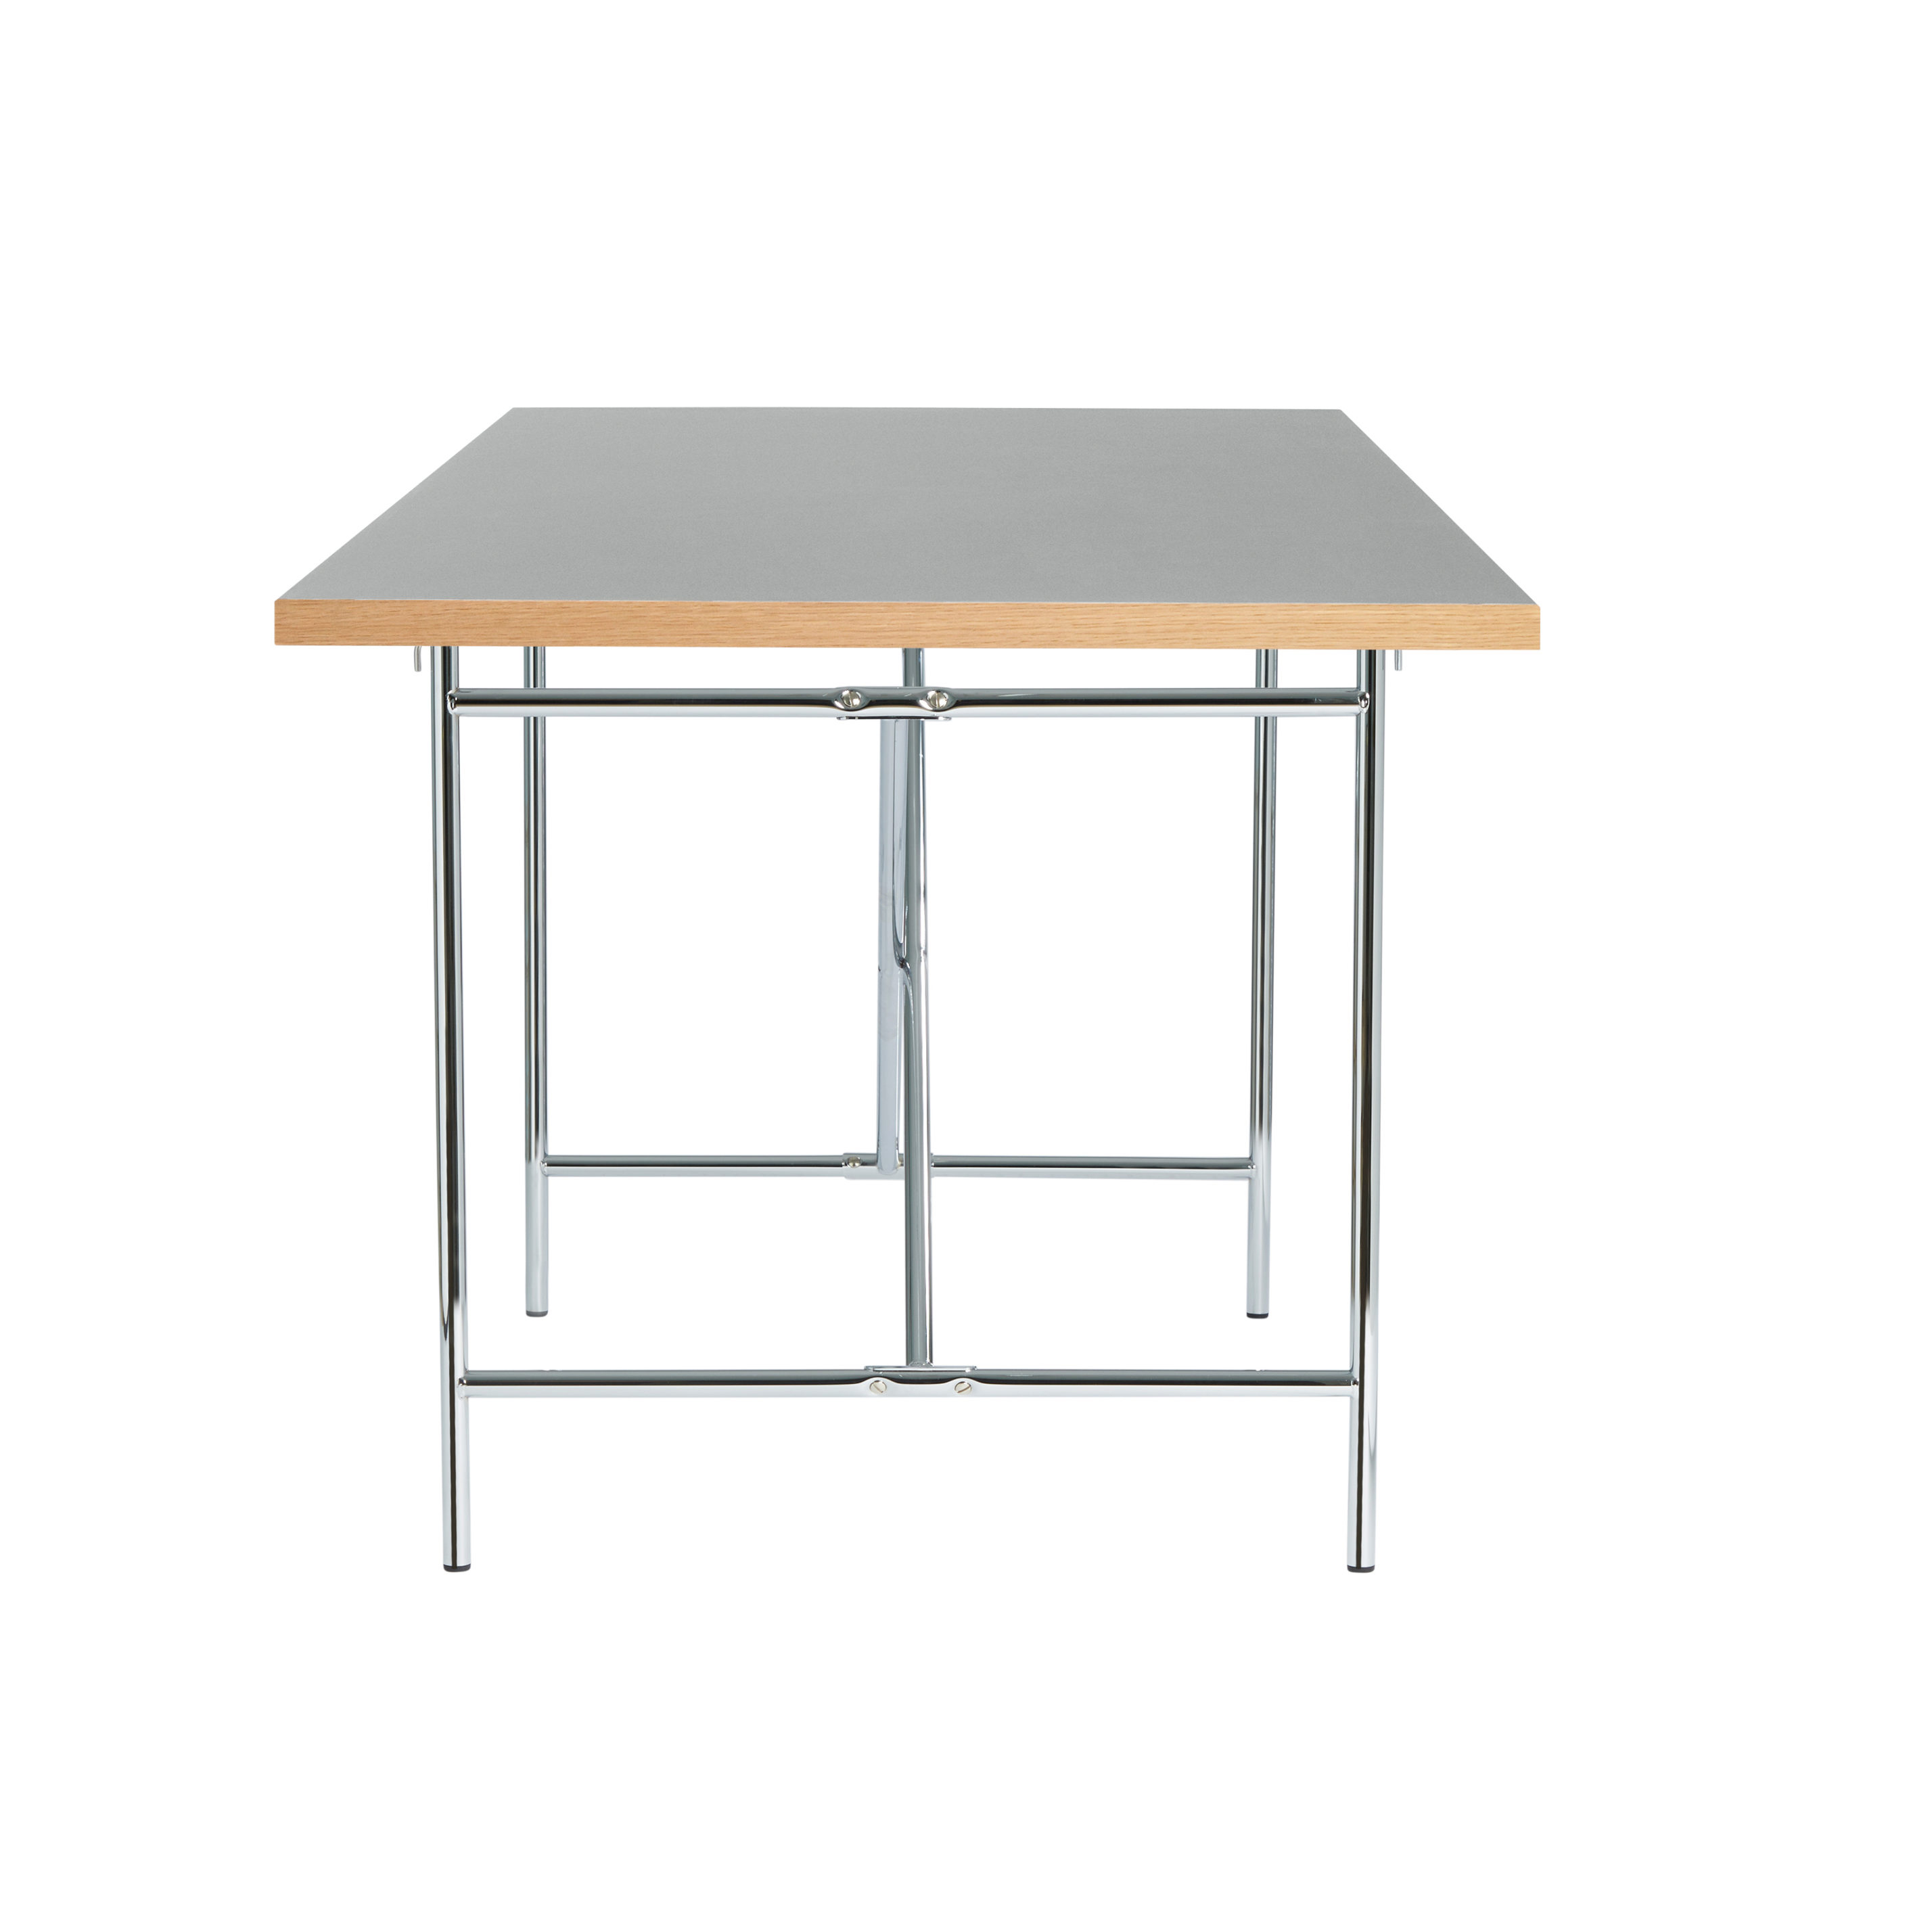 Eiermann 2 Dining Table 120 x 80